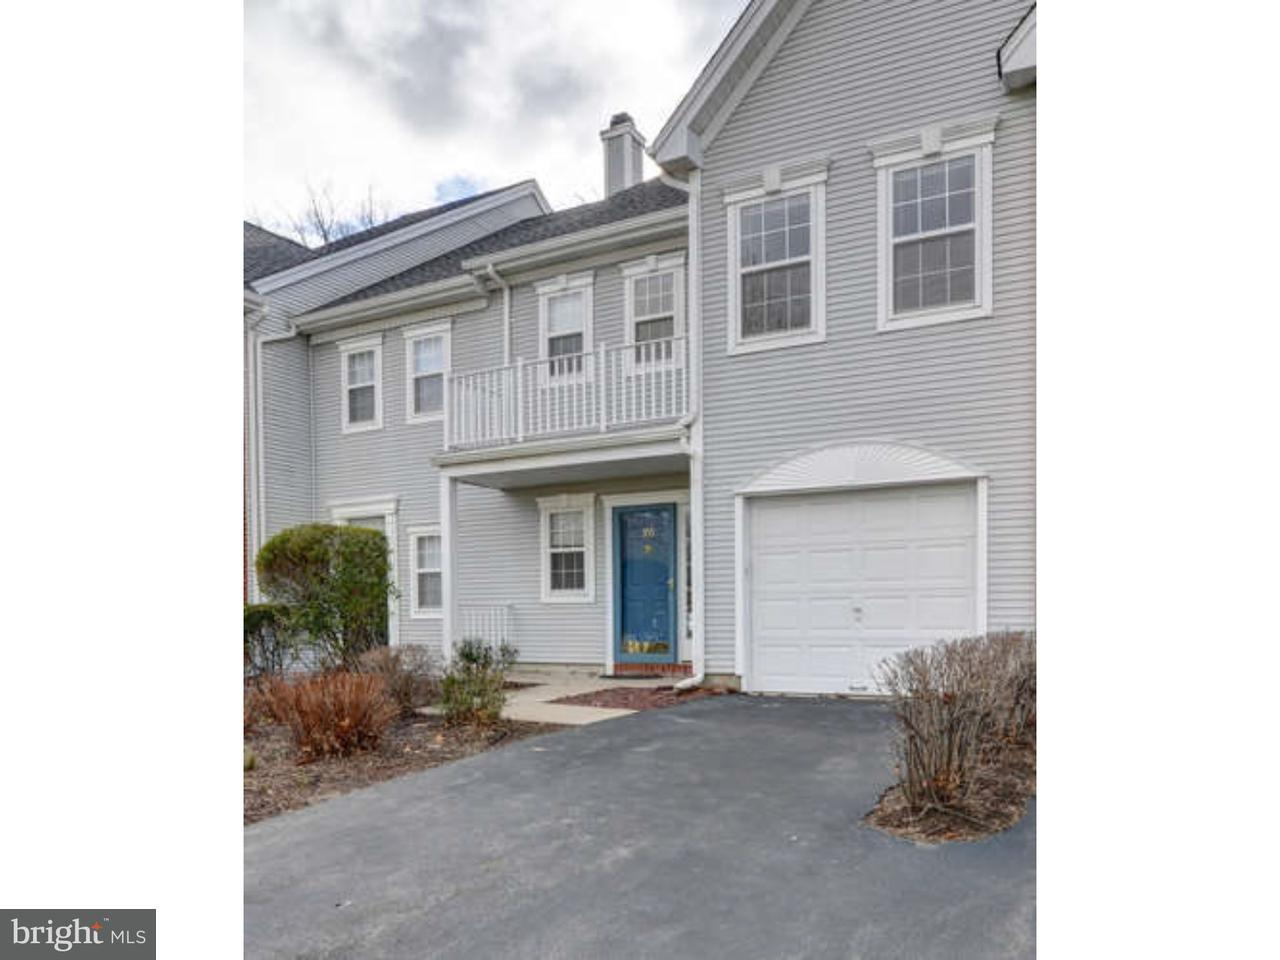 Local Real Estate: Townhomes for Sale — Pennington, NJ — Coldwell Banker